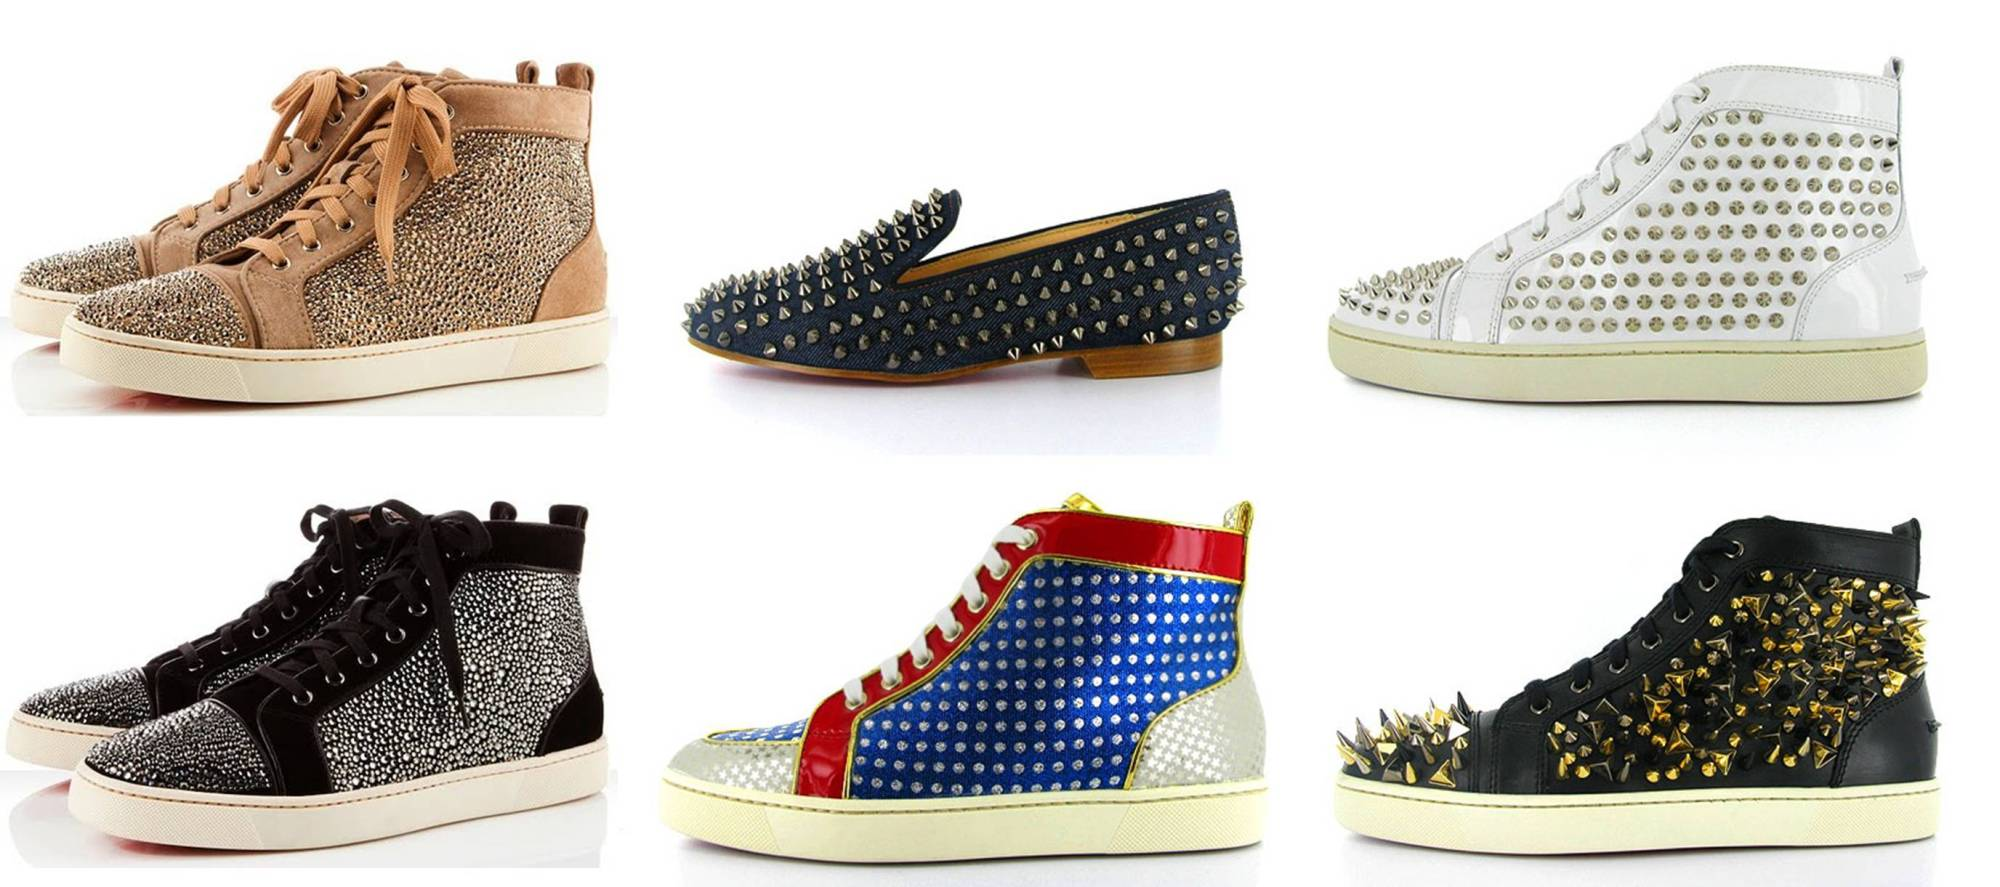 Christian Louboutin Fall Winter 2010 Mens Trainers 1